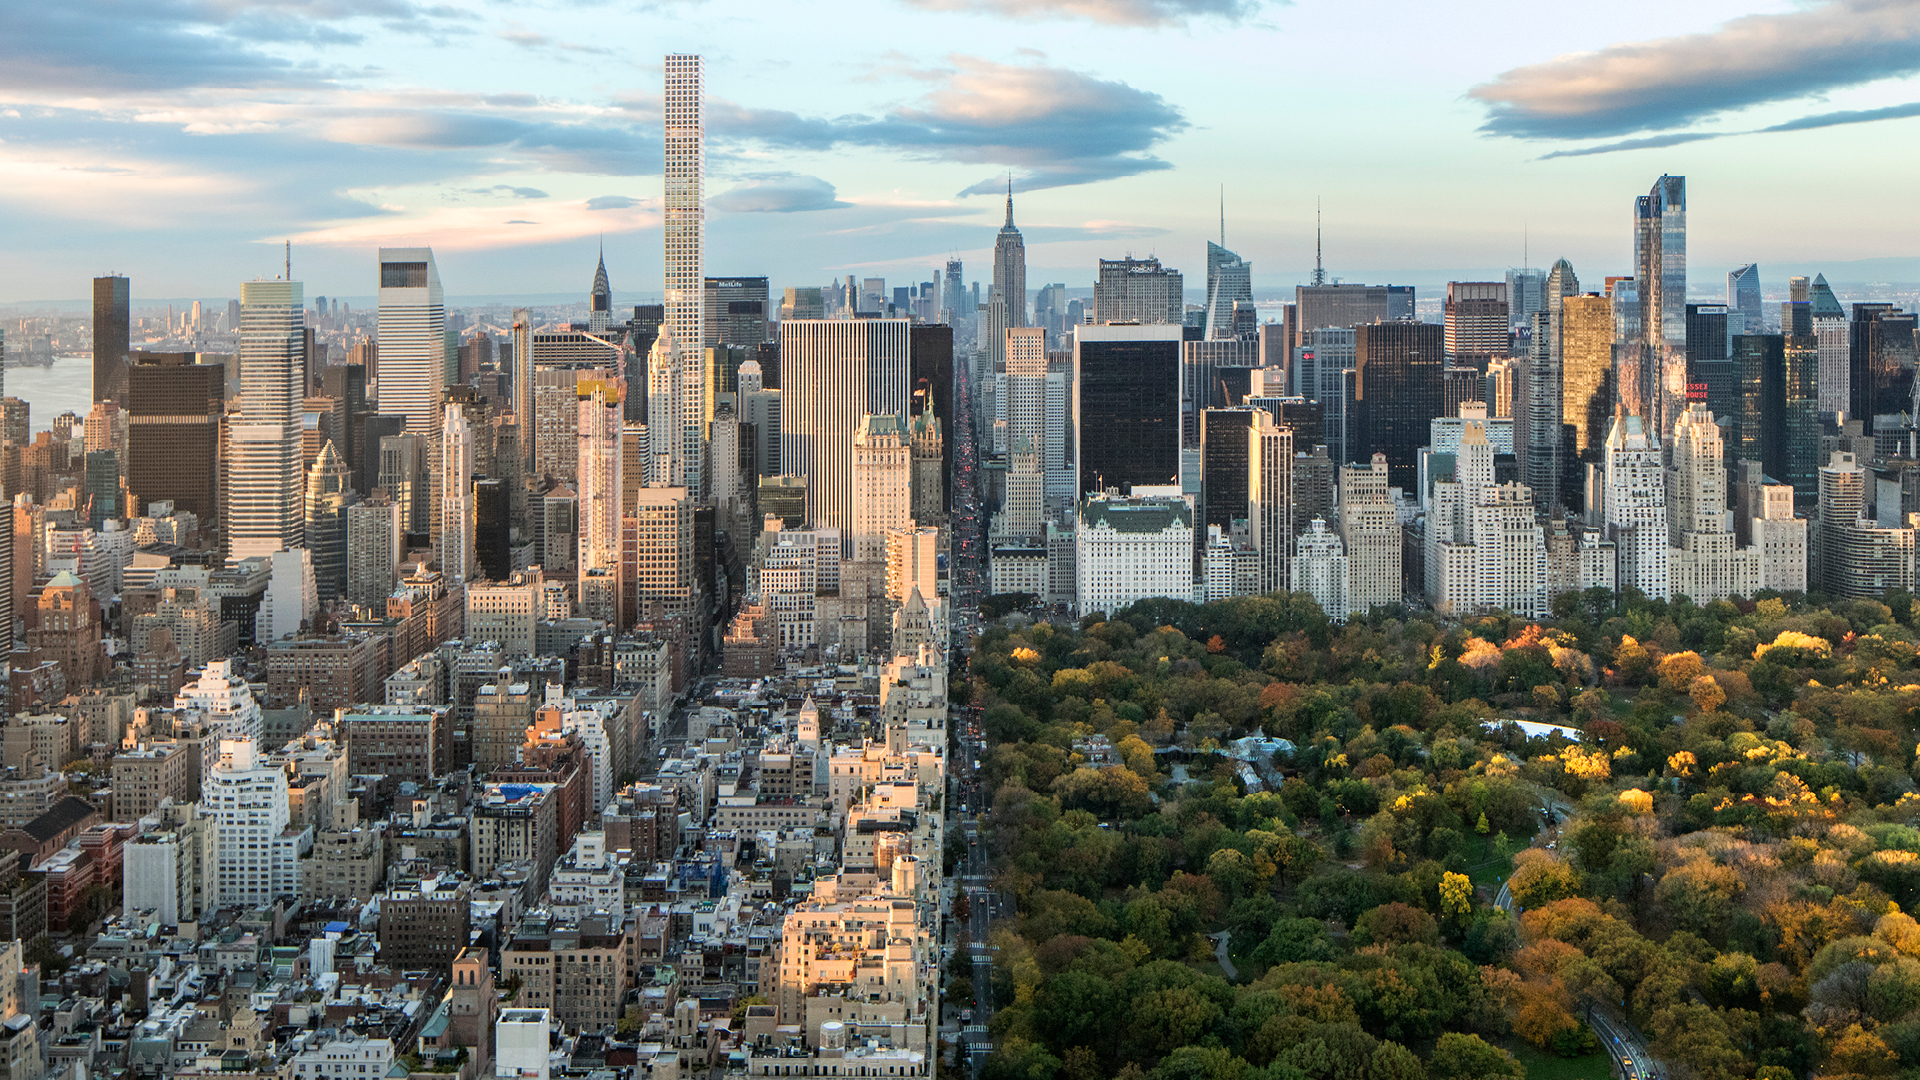 View from Uptown towards Central Park and Midtown, with 432 Park Avenue | New York | Vladimir Belogolovsky | STIRworld